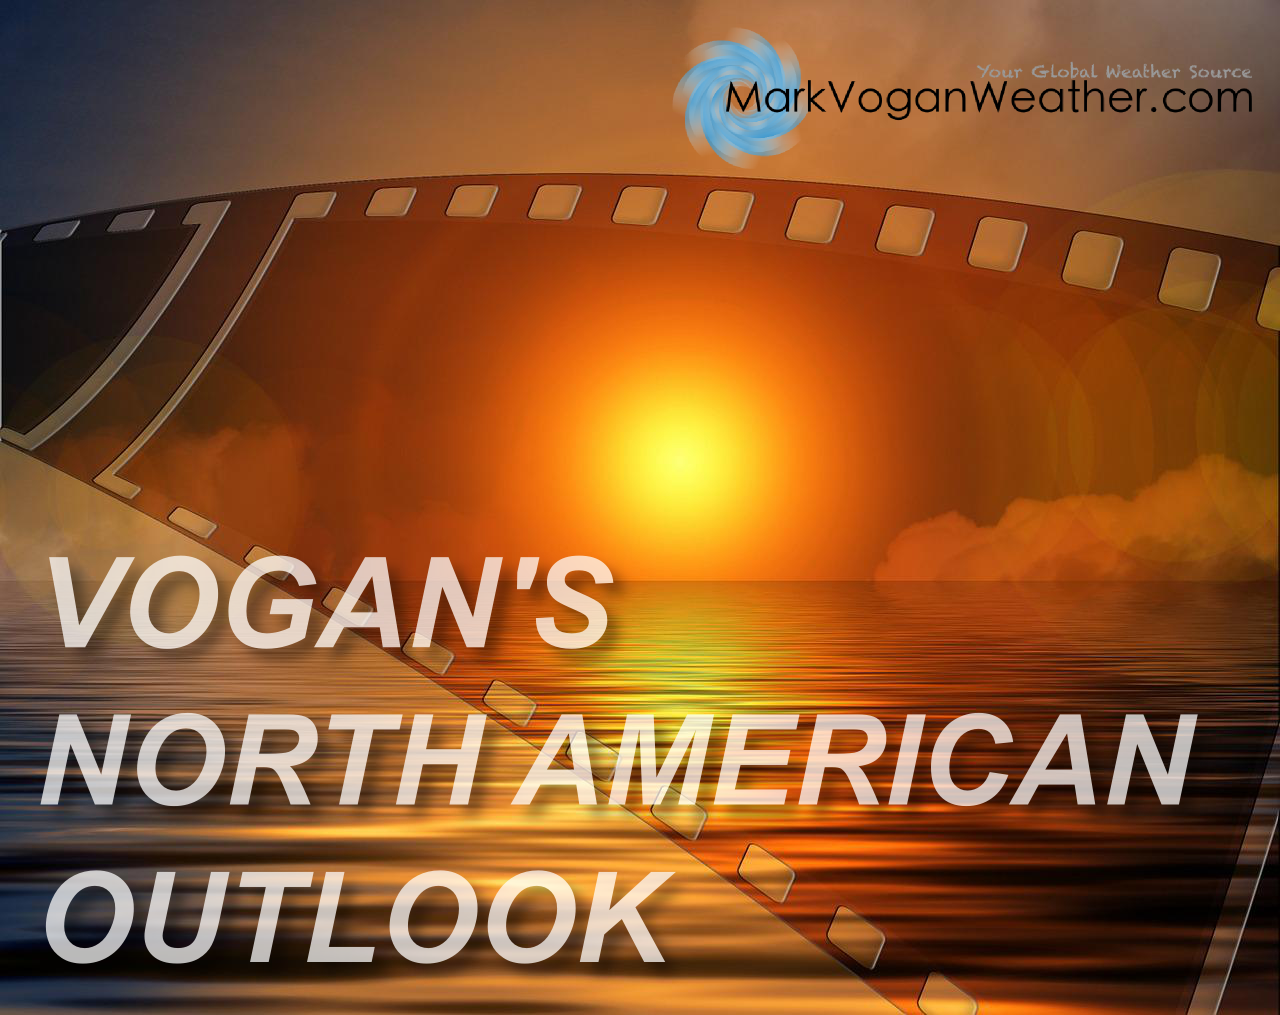 SUN 12 OCT: VOGAN'S NORTH AMERICAN OUTLOOK